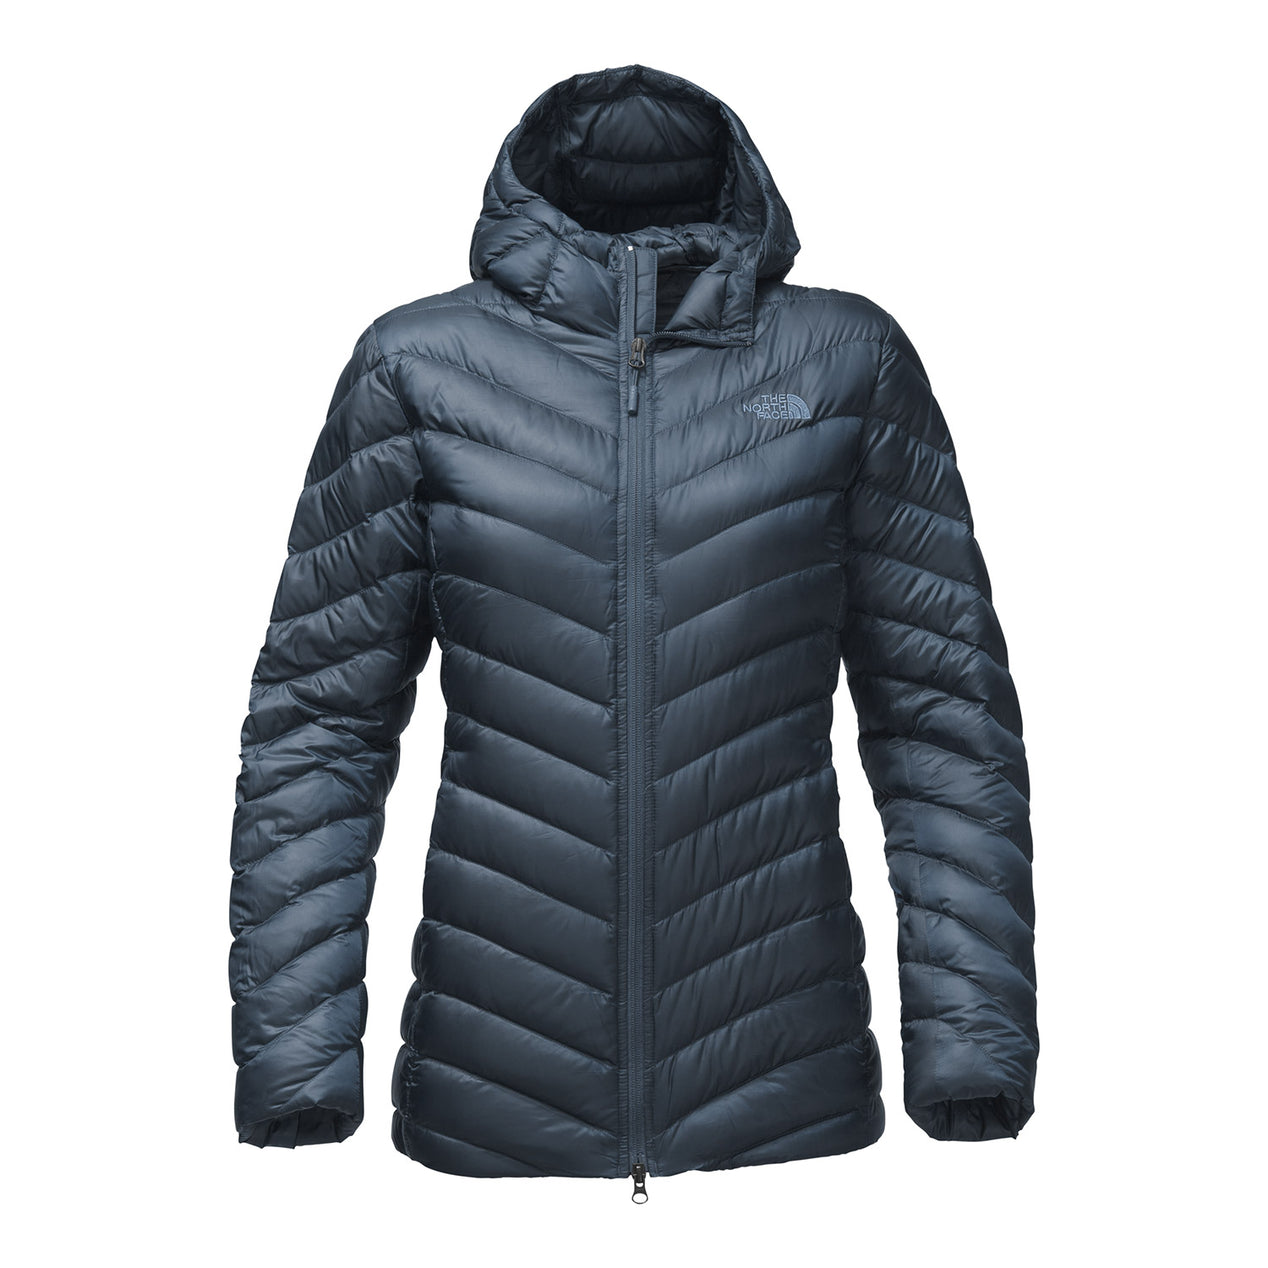 37d573675 The North Face Women's Trevail Parka